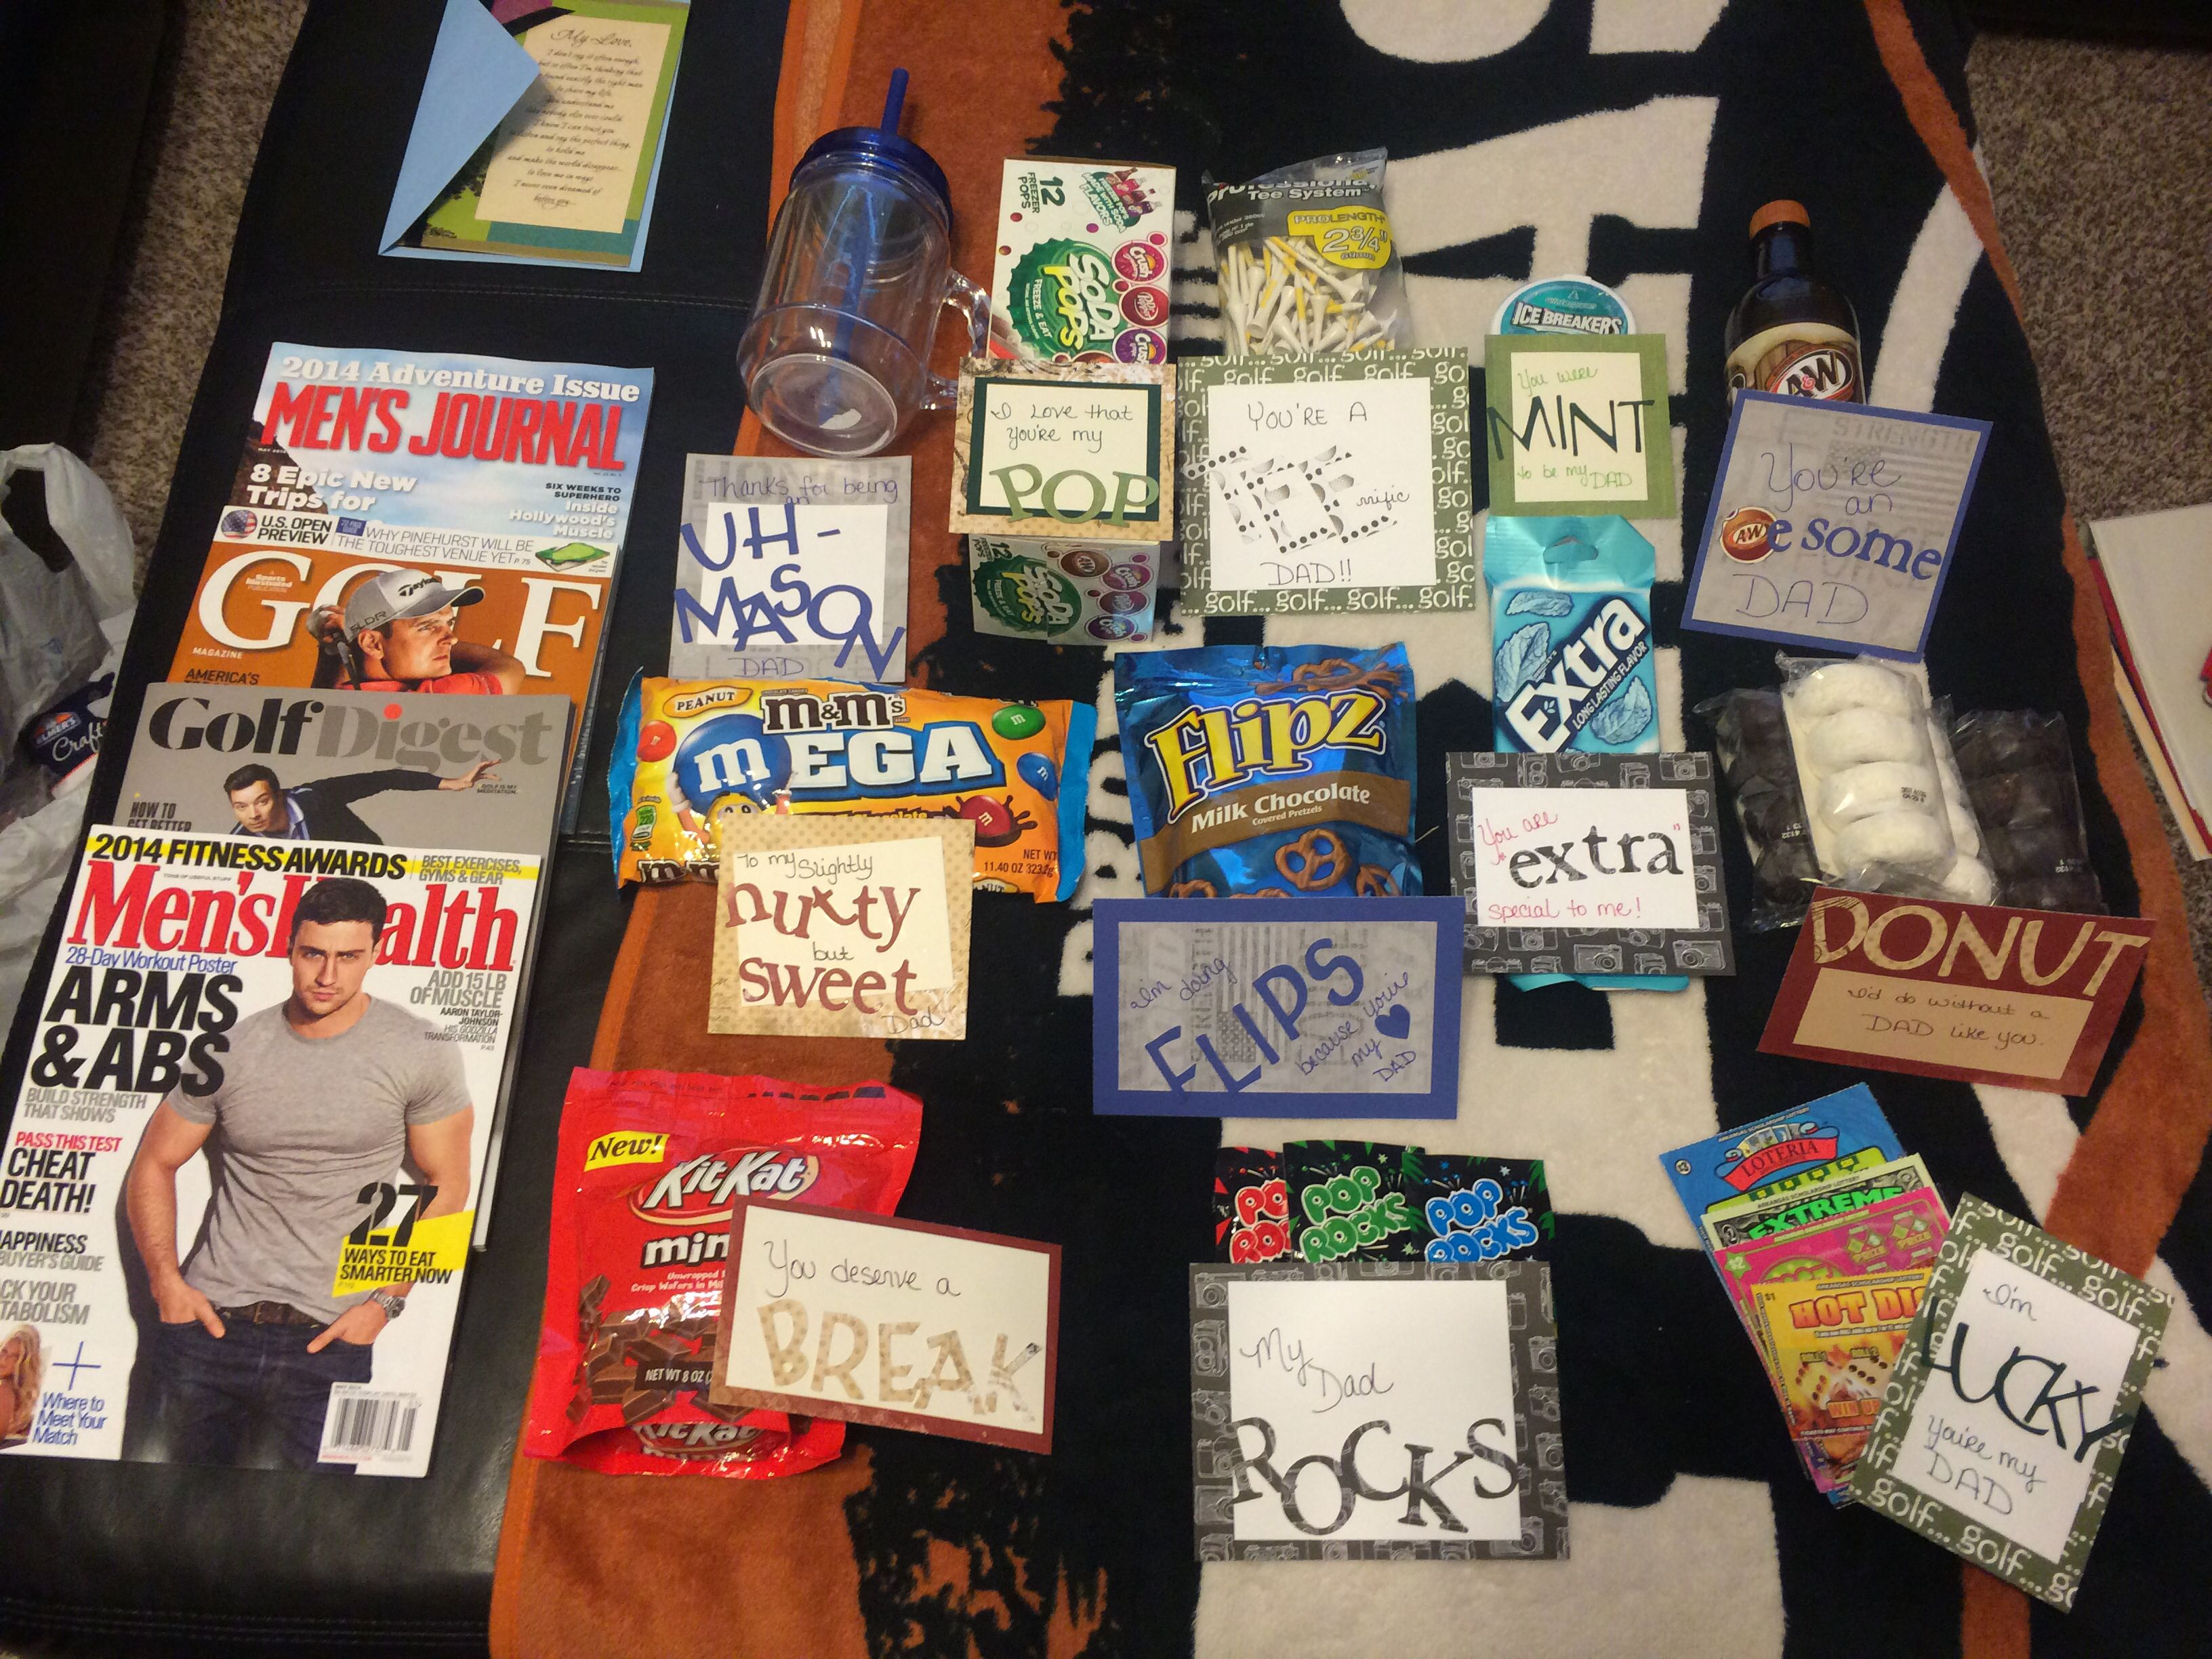 Father's Day deployment care package. Corny sayings with